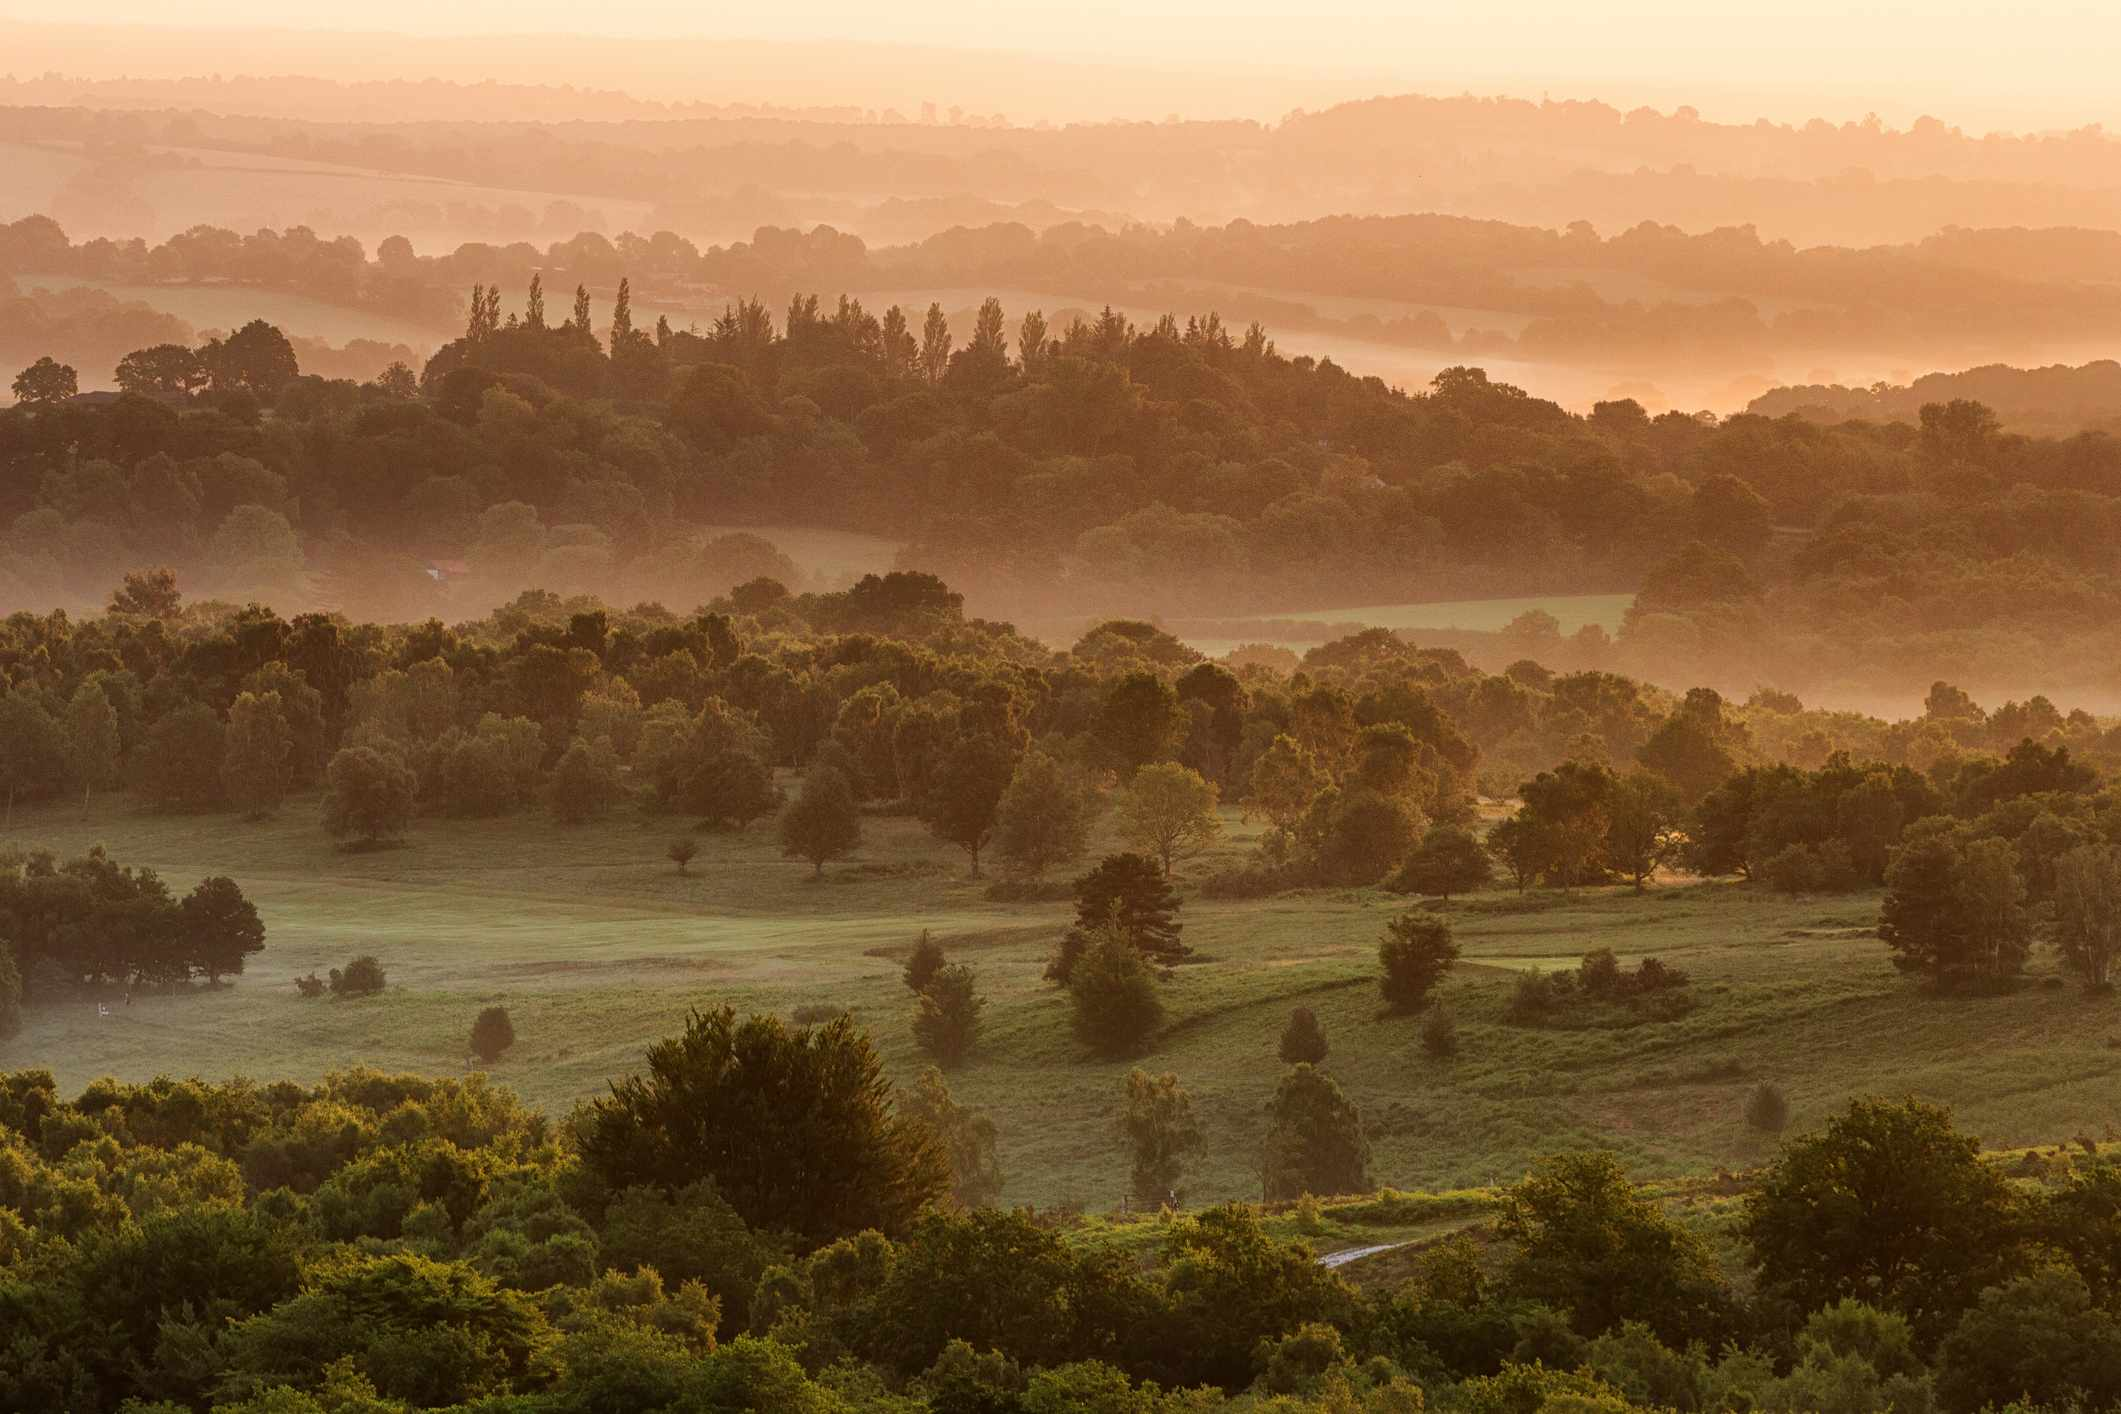 Sunrise looking over the weald of ashdown forest in sussex, UK